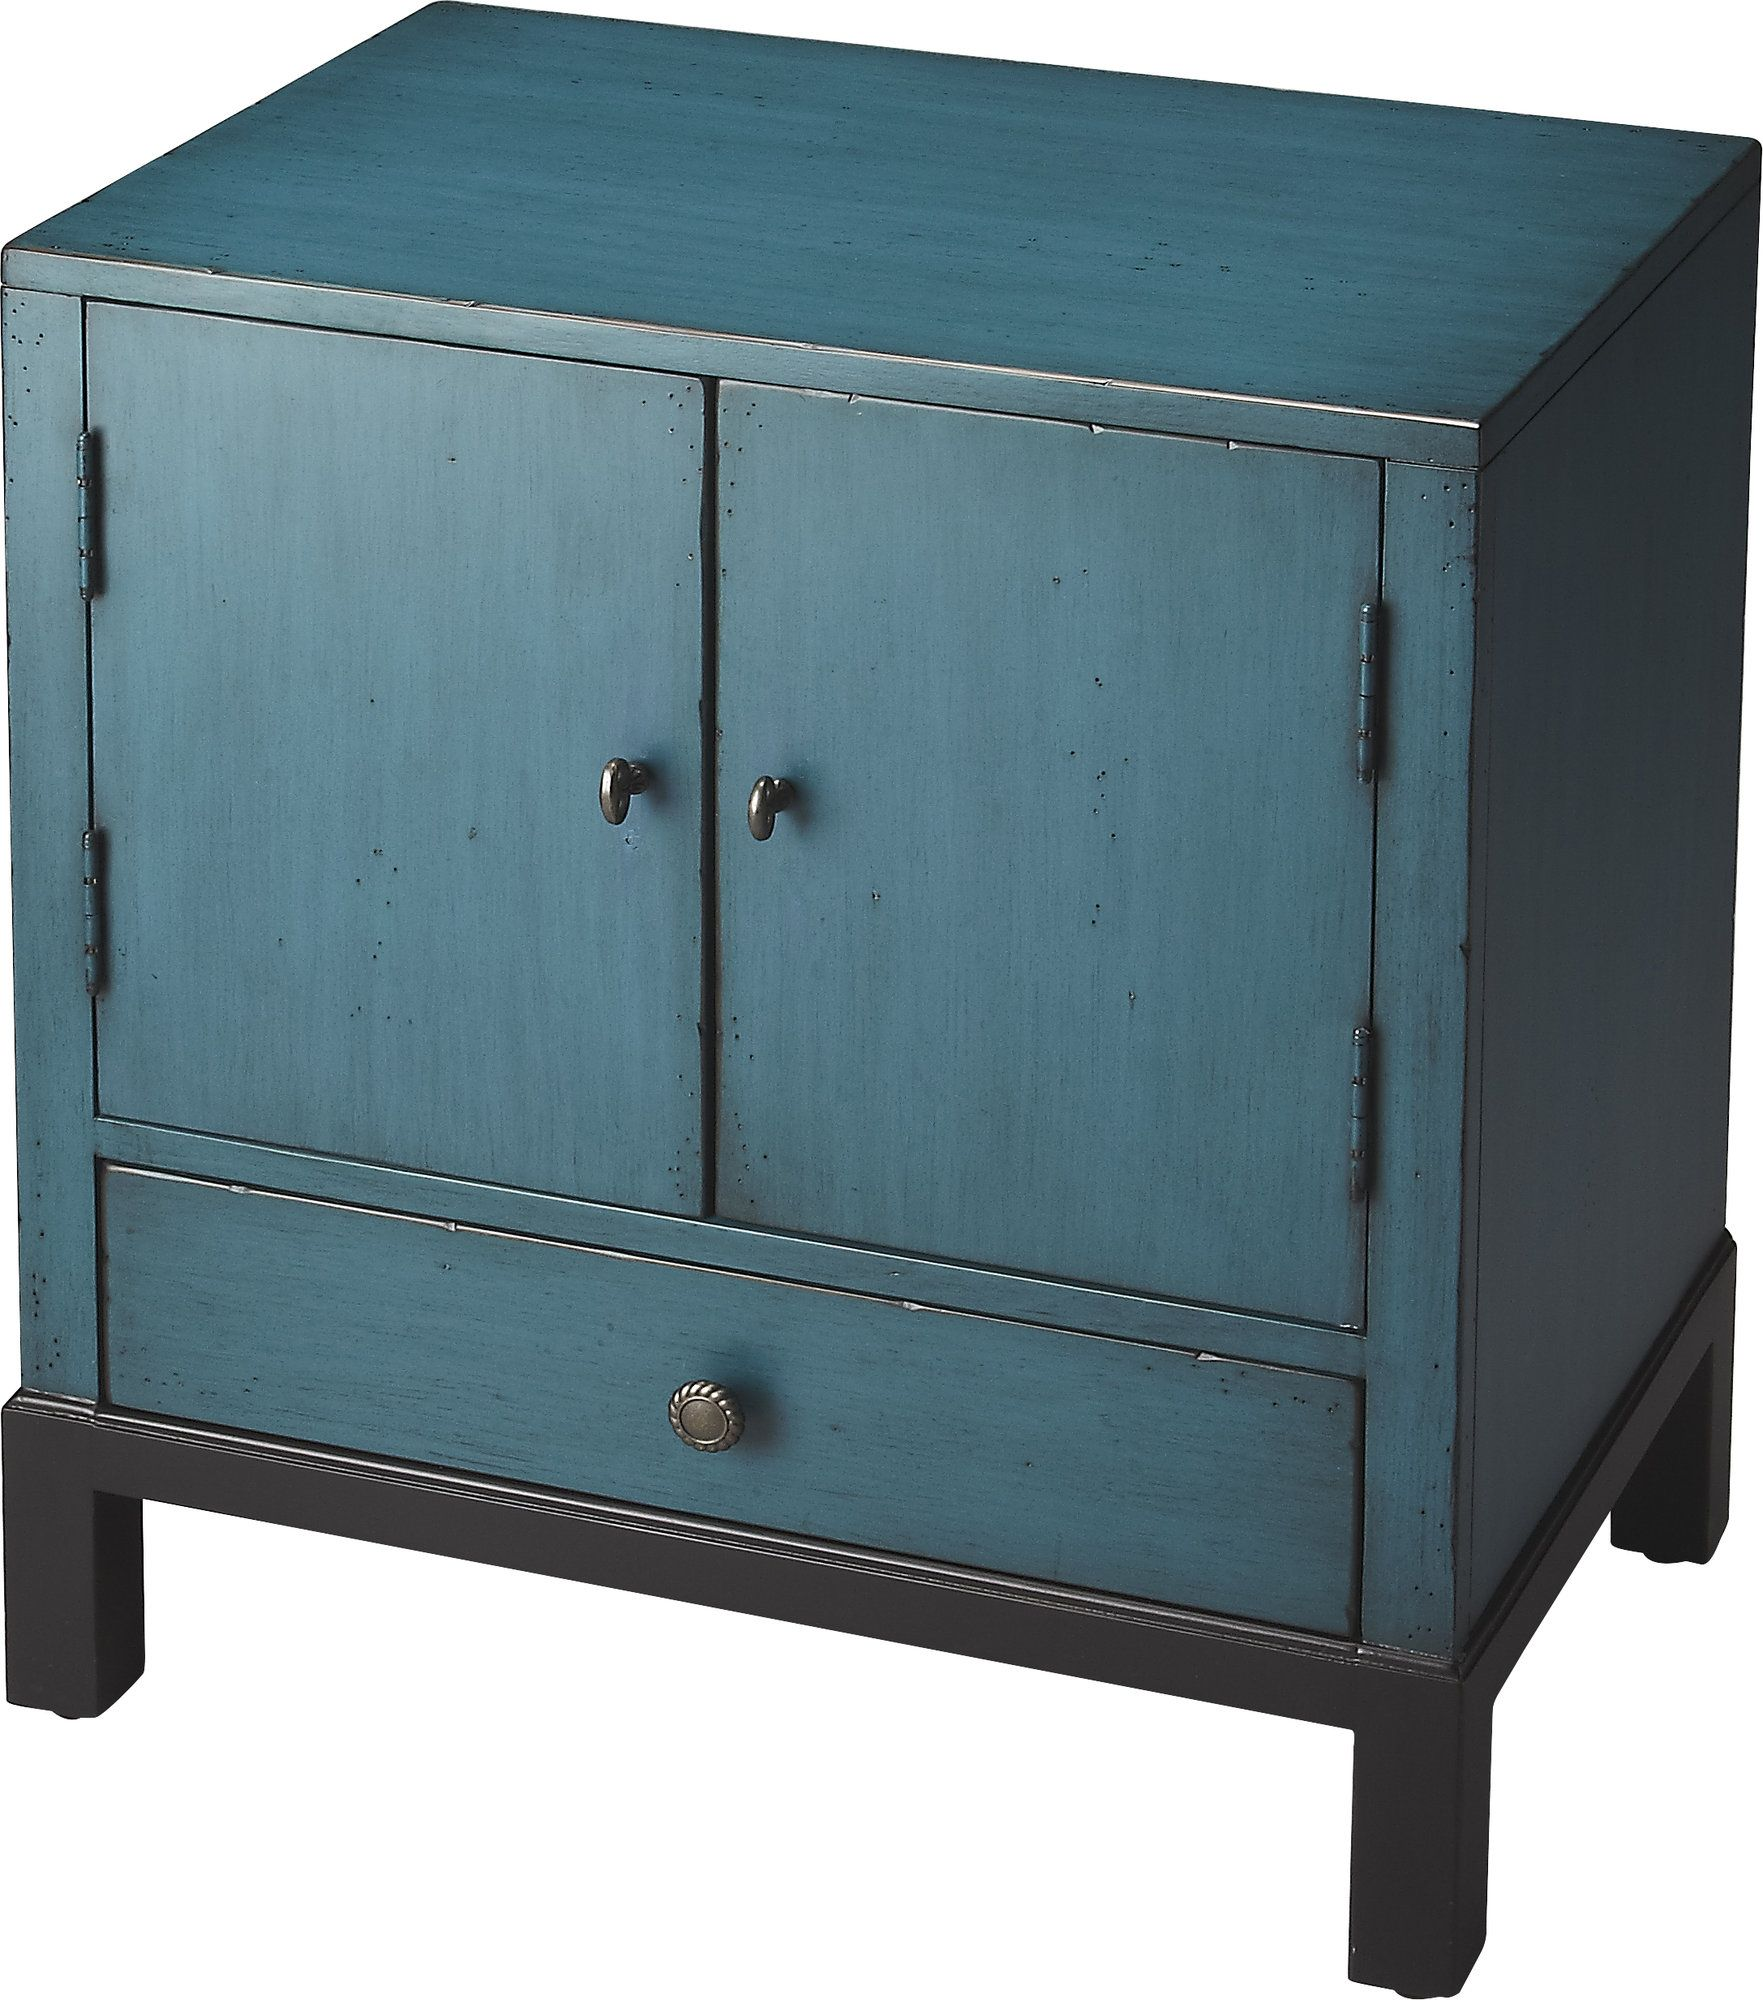 Dupree Cabinet | Products | Pinterest | Products